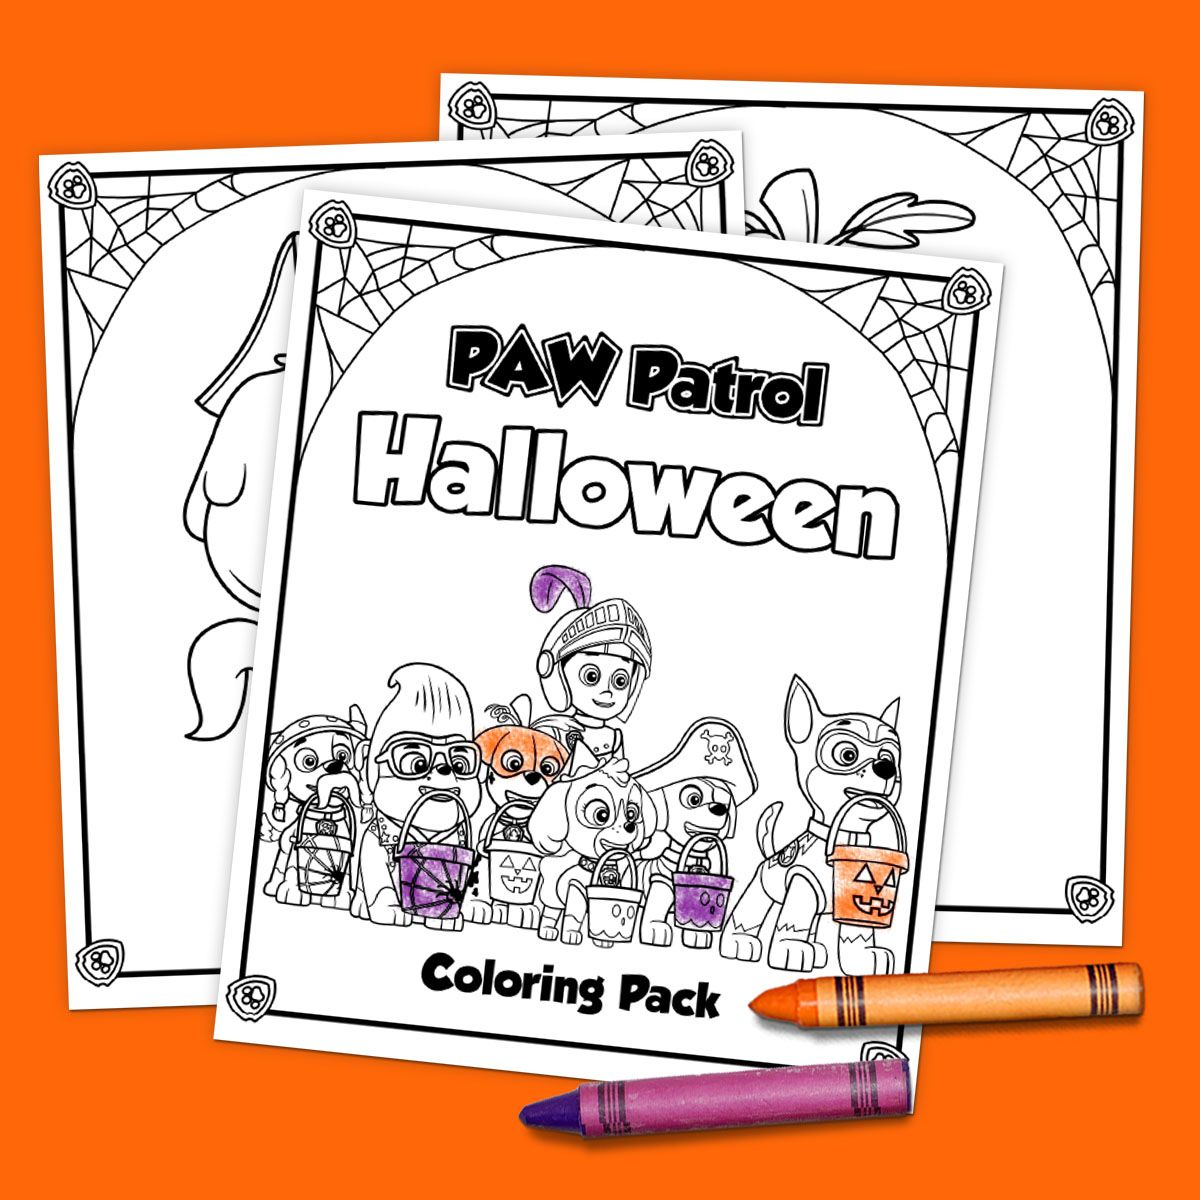 5 Paw Patrol Halloween Printables Halloween Coloring Halloween Coloring Pages Halloween Printables